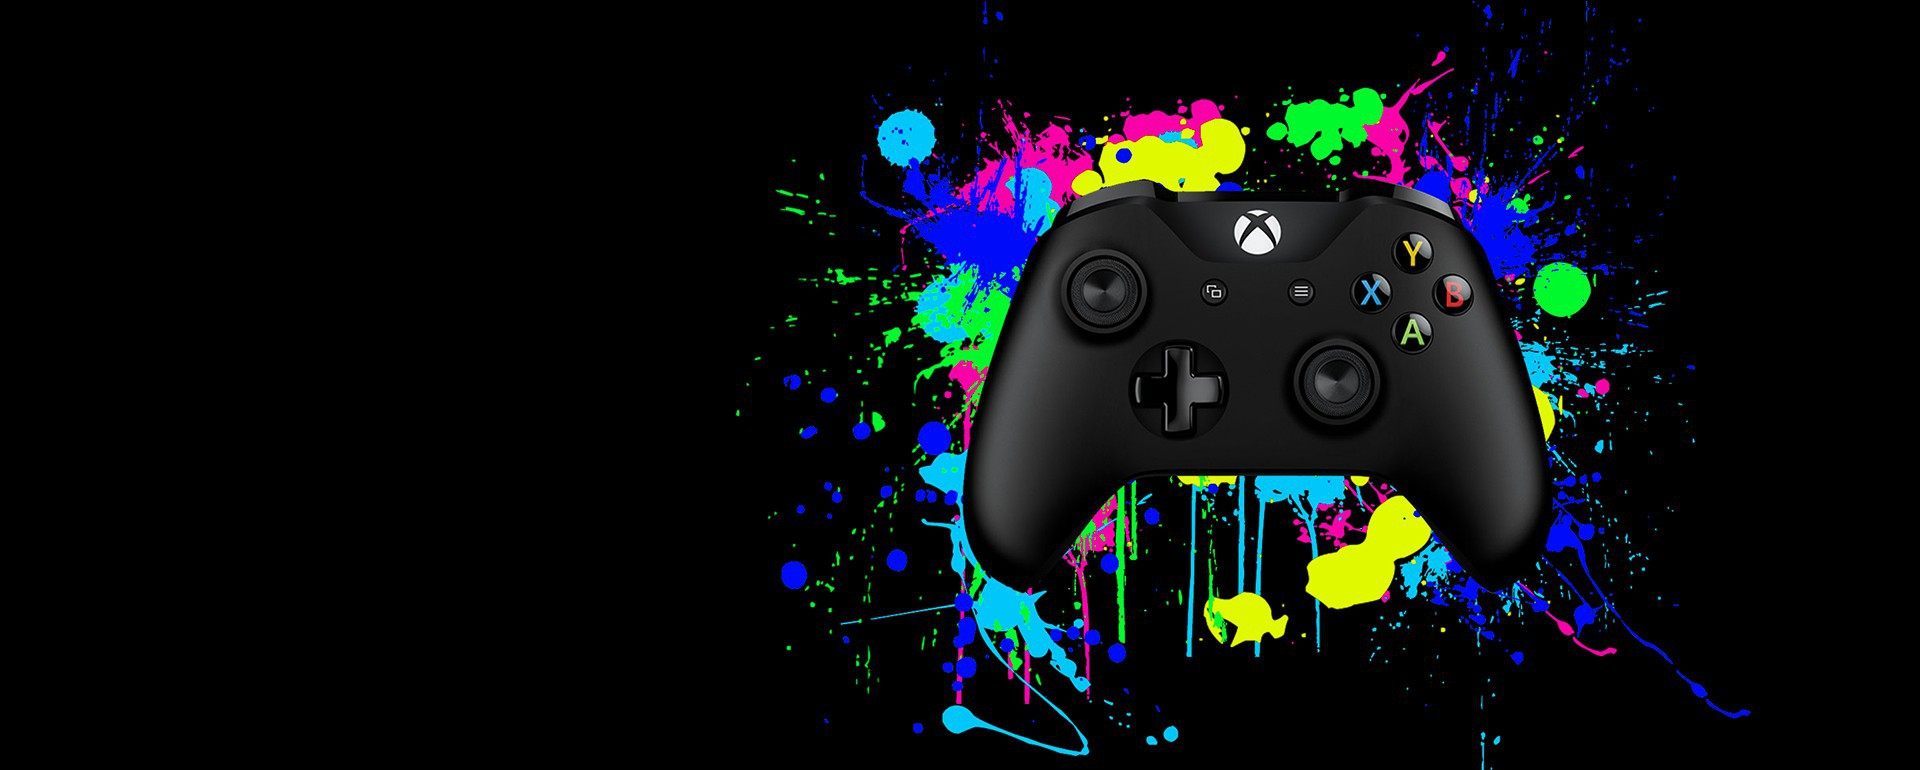 XBOX ONE - Customizes your controller Xbox One